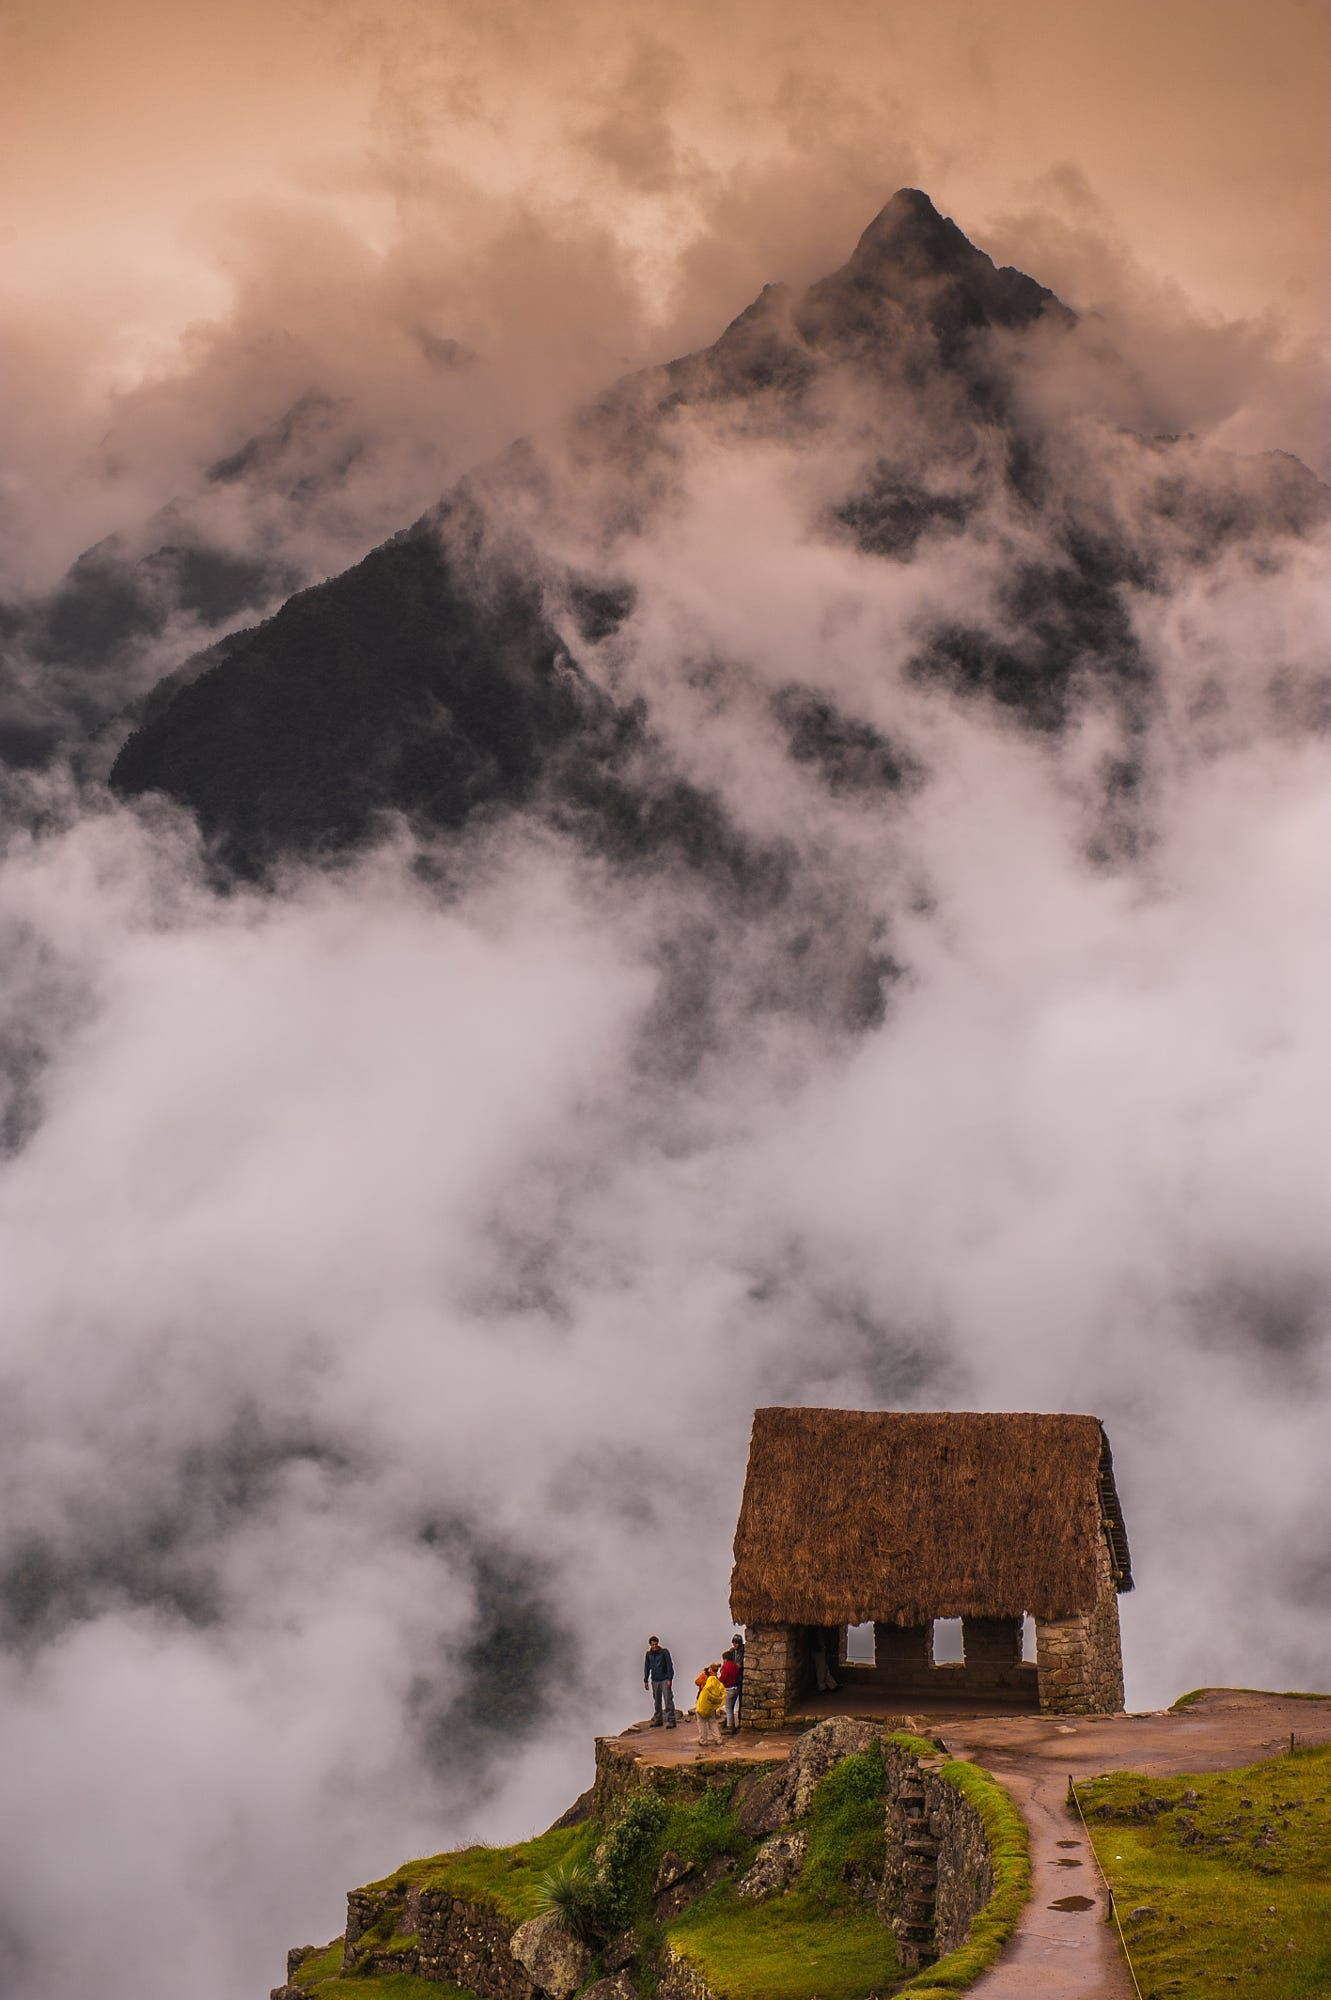 Clouds Rise Around And Over The Gatekeepers Hut In Machu Picchu